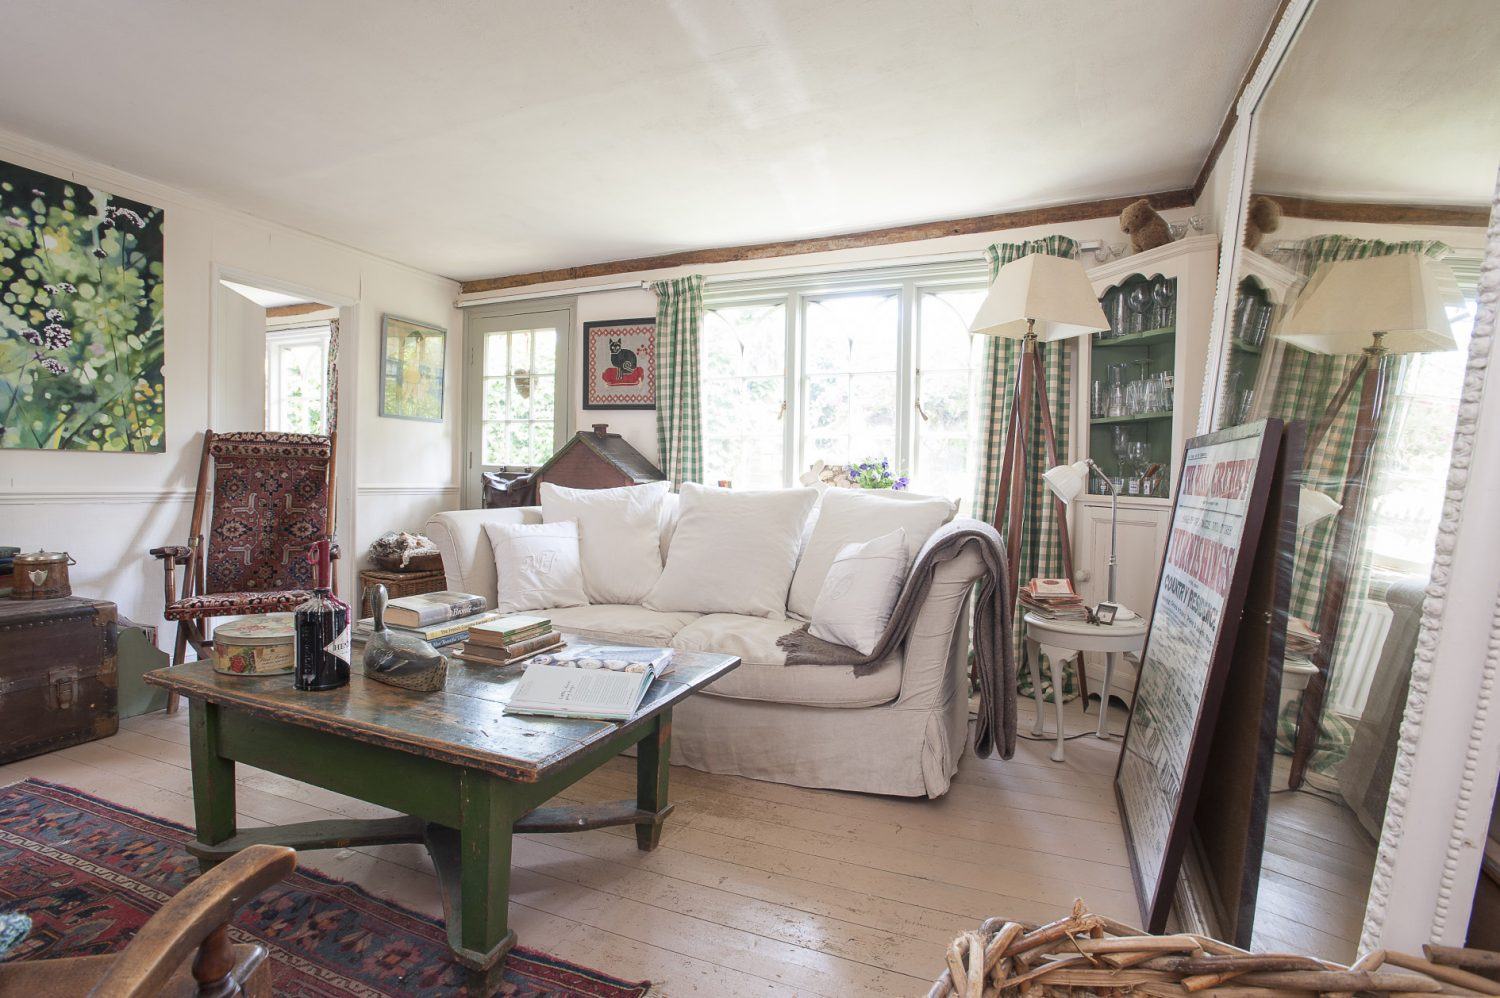 As the cottage is all on one level, the rooms are clustered closely together with the sitting room at the cente.